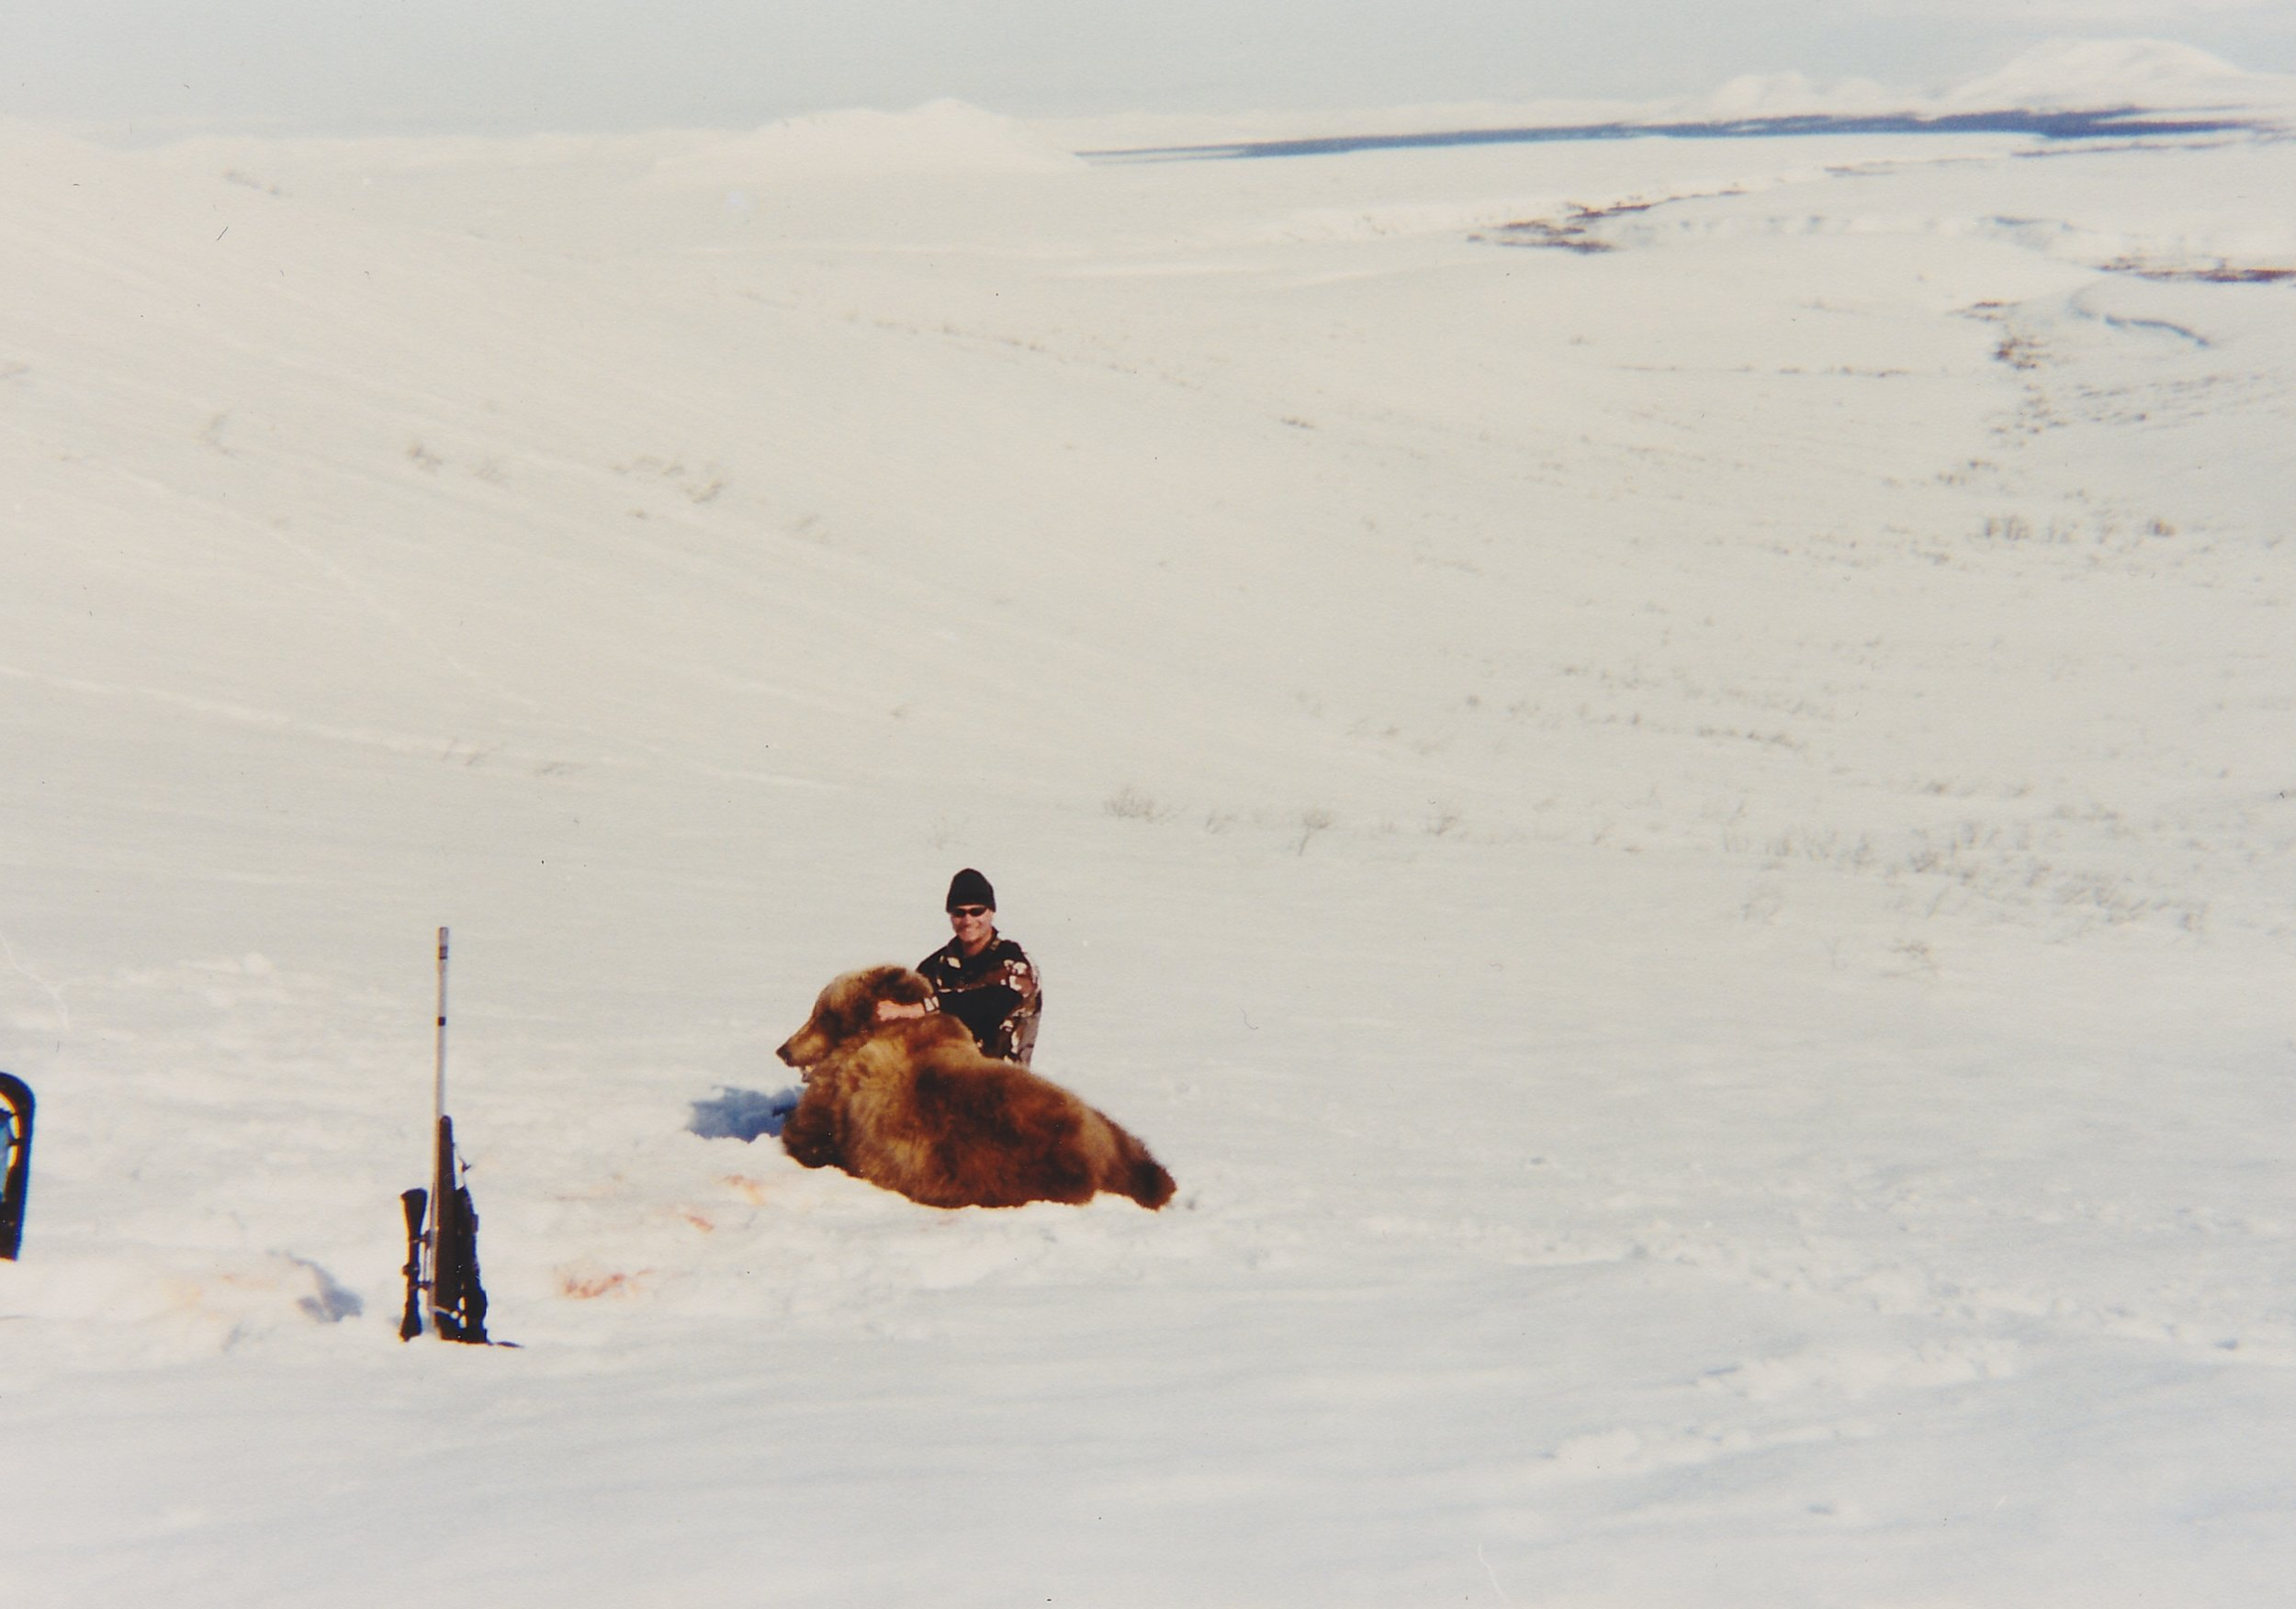 Guide Mark Glaser with Ken Farrier's bear. Typical snow conditions.